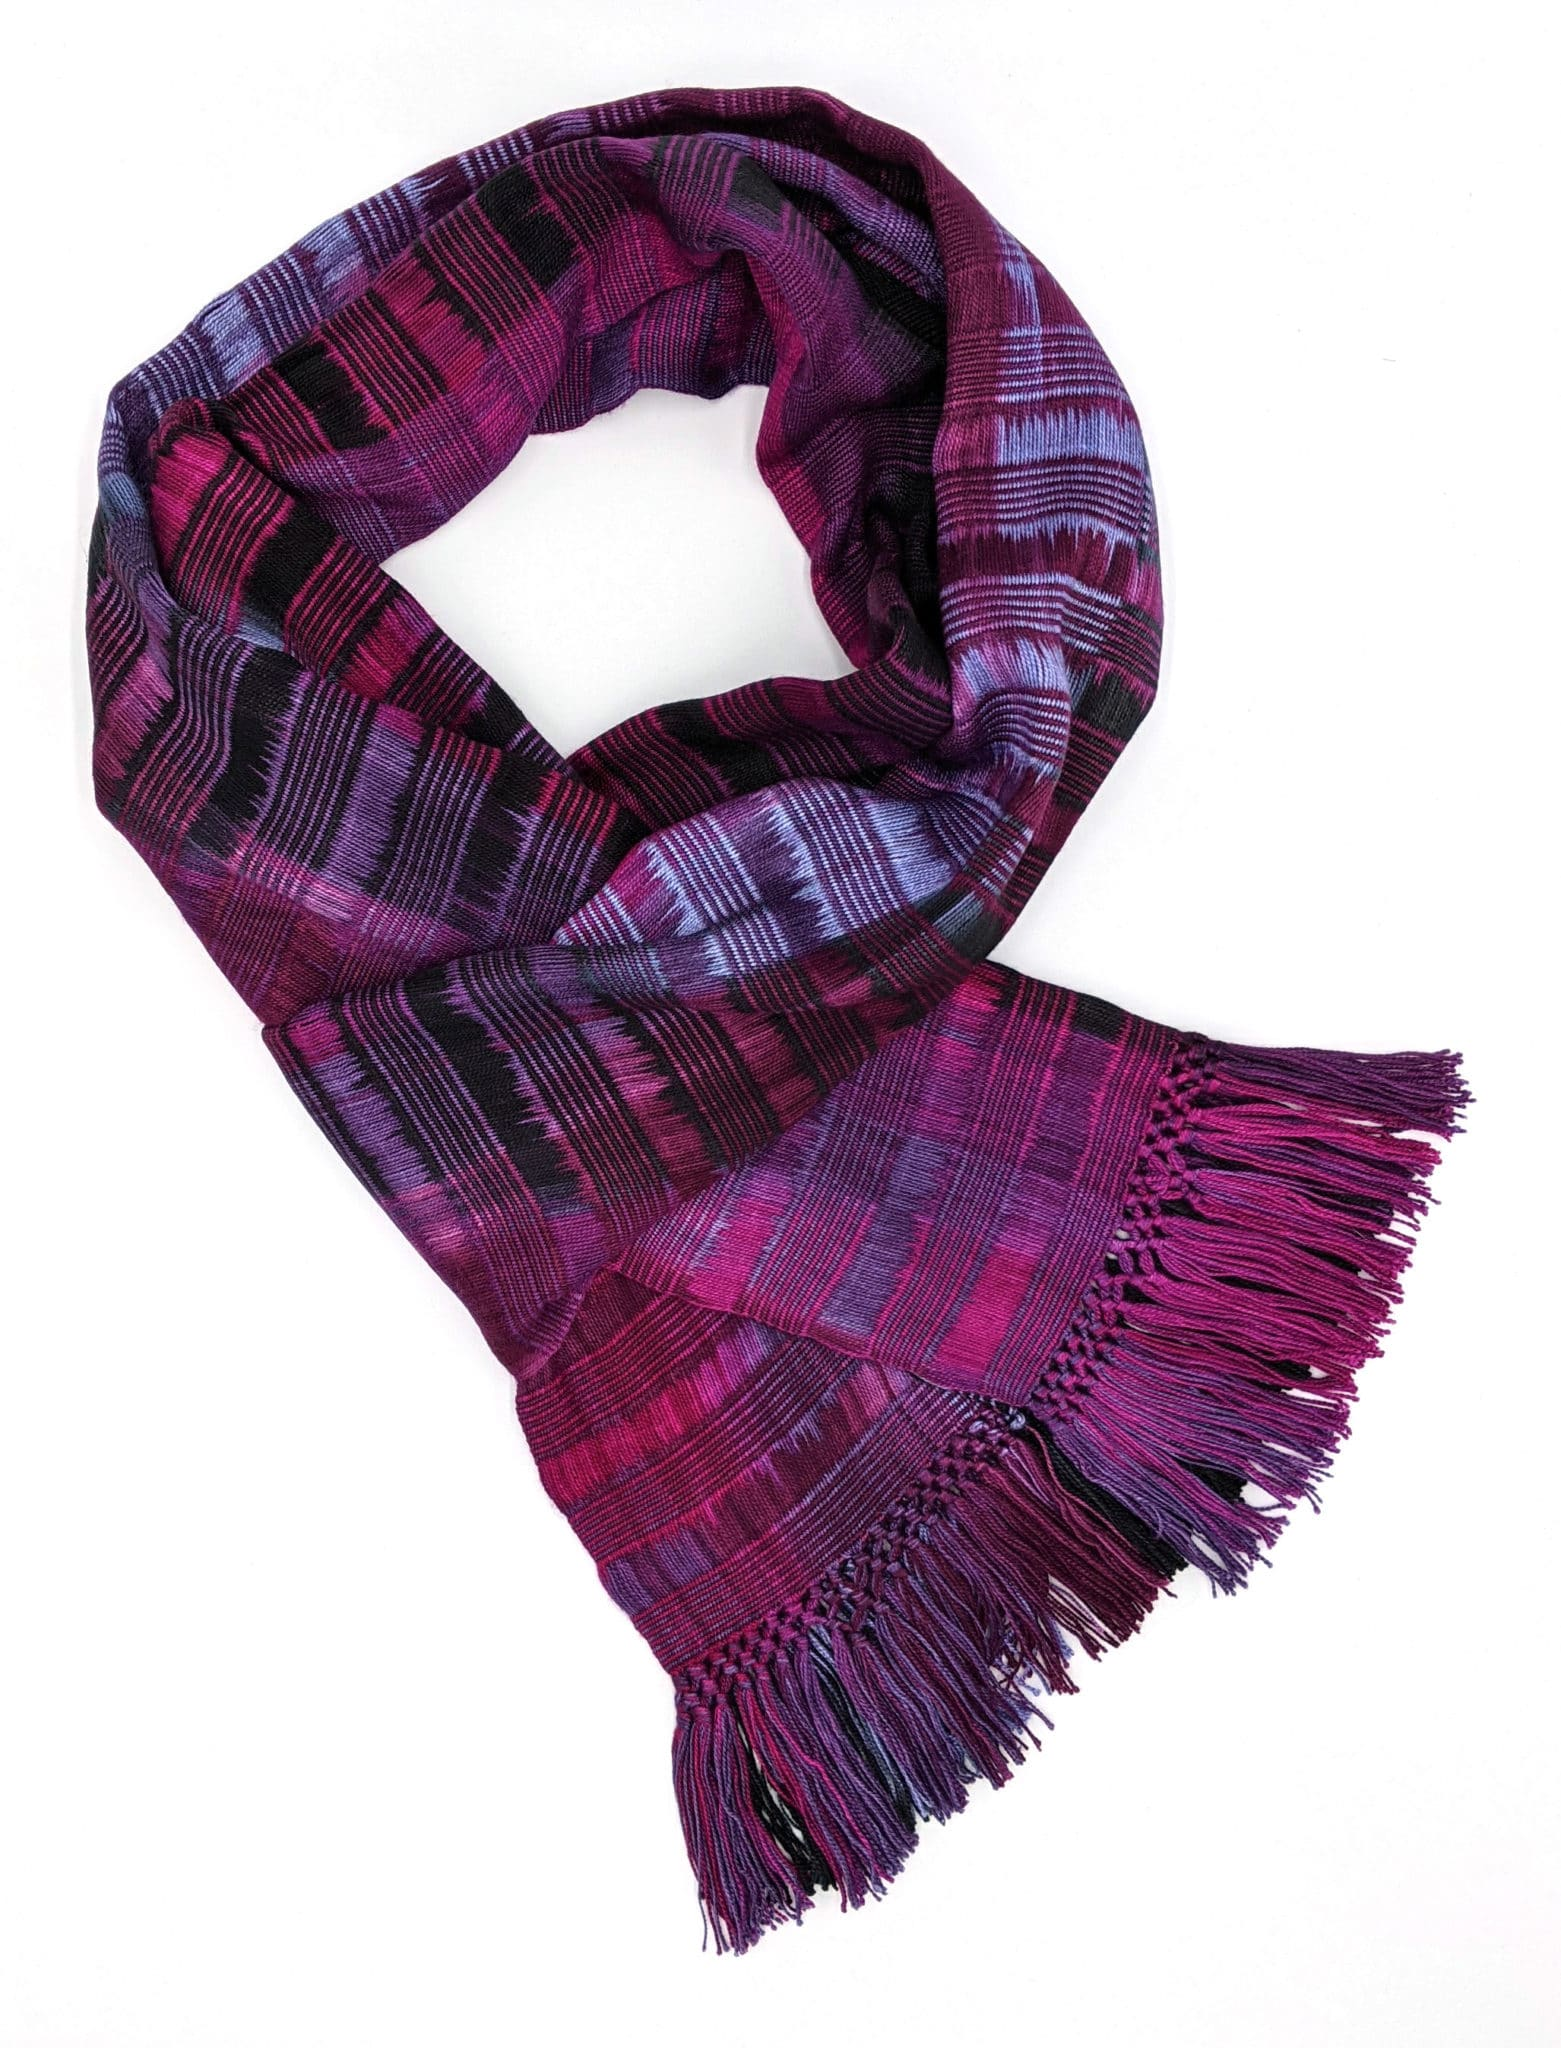 Magenta, Light Violet and Black Lightweight Bamboo Open-Weave Handwoven Scarf 8 x 68